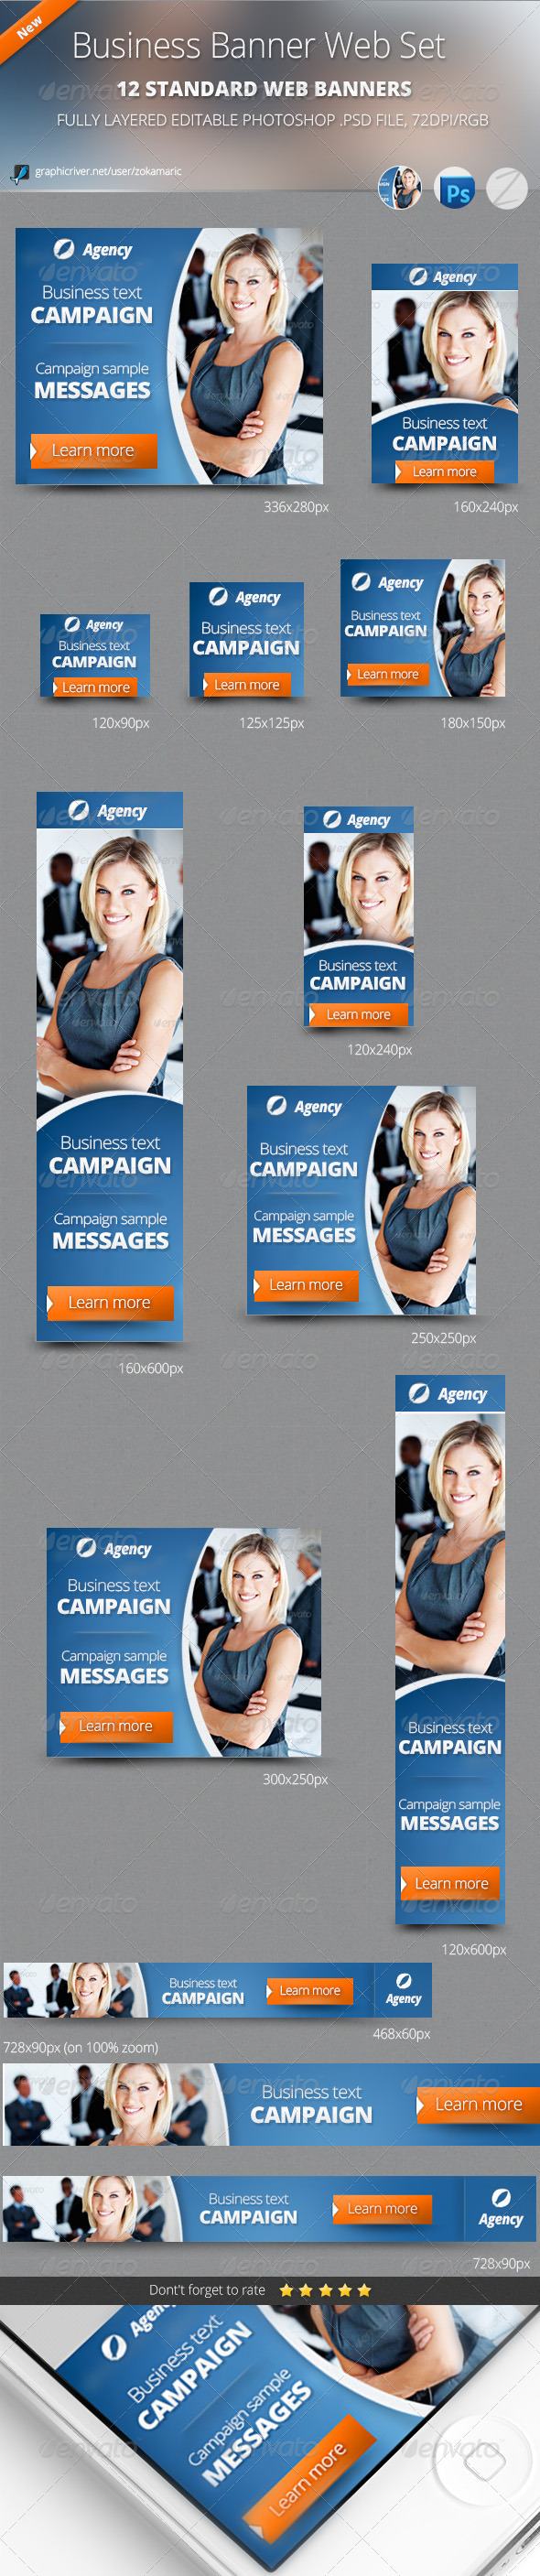 Business Banner Web Set  - Banners & Ads Web Elements